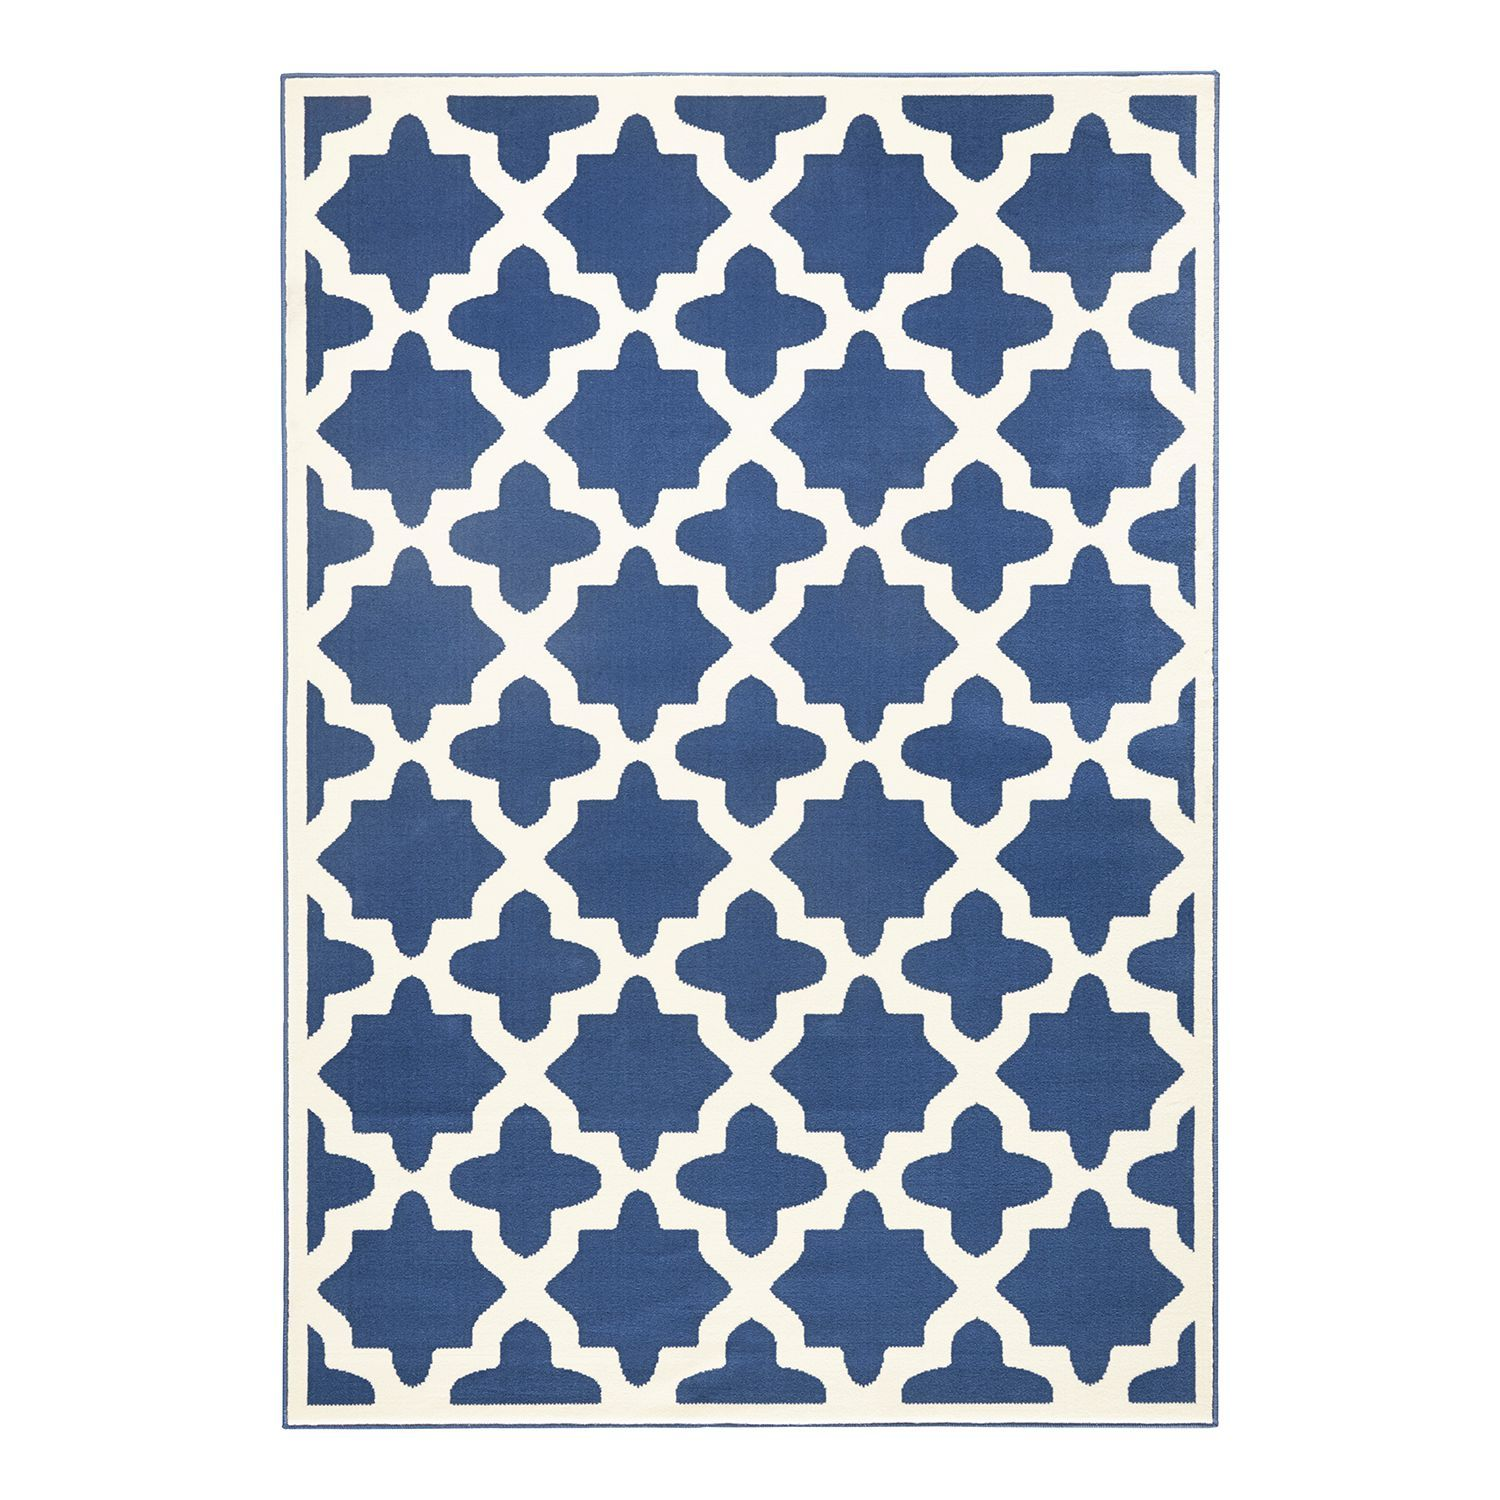 Teppiche 200 Home24 Teppich Noble Teppiche Area Rugs Rugs Light Blue Area Rug